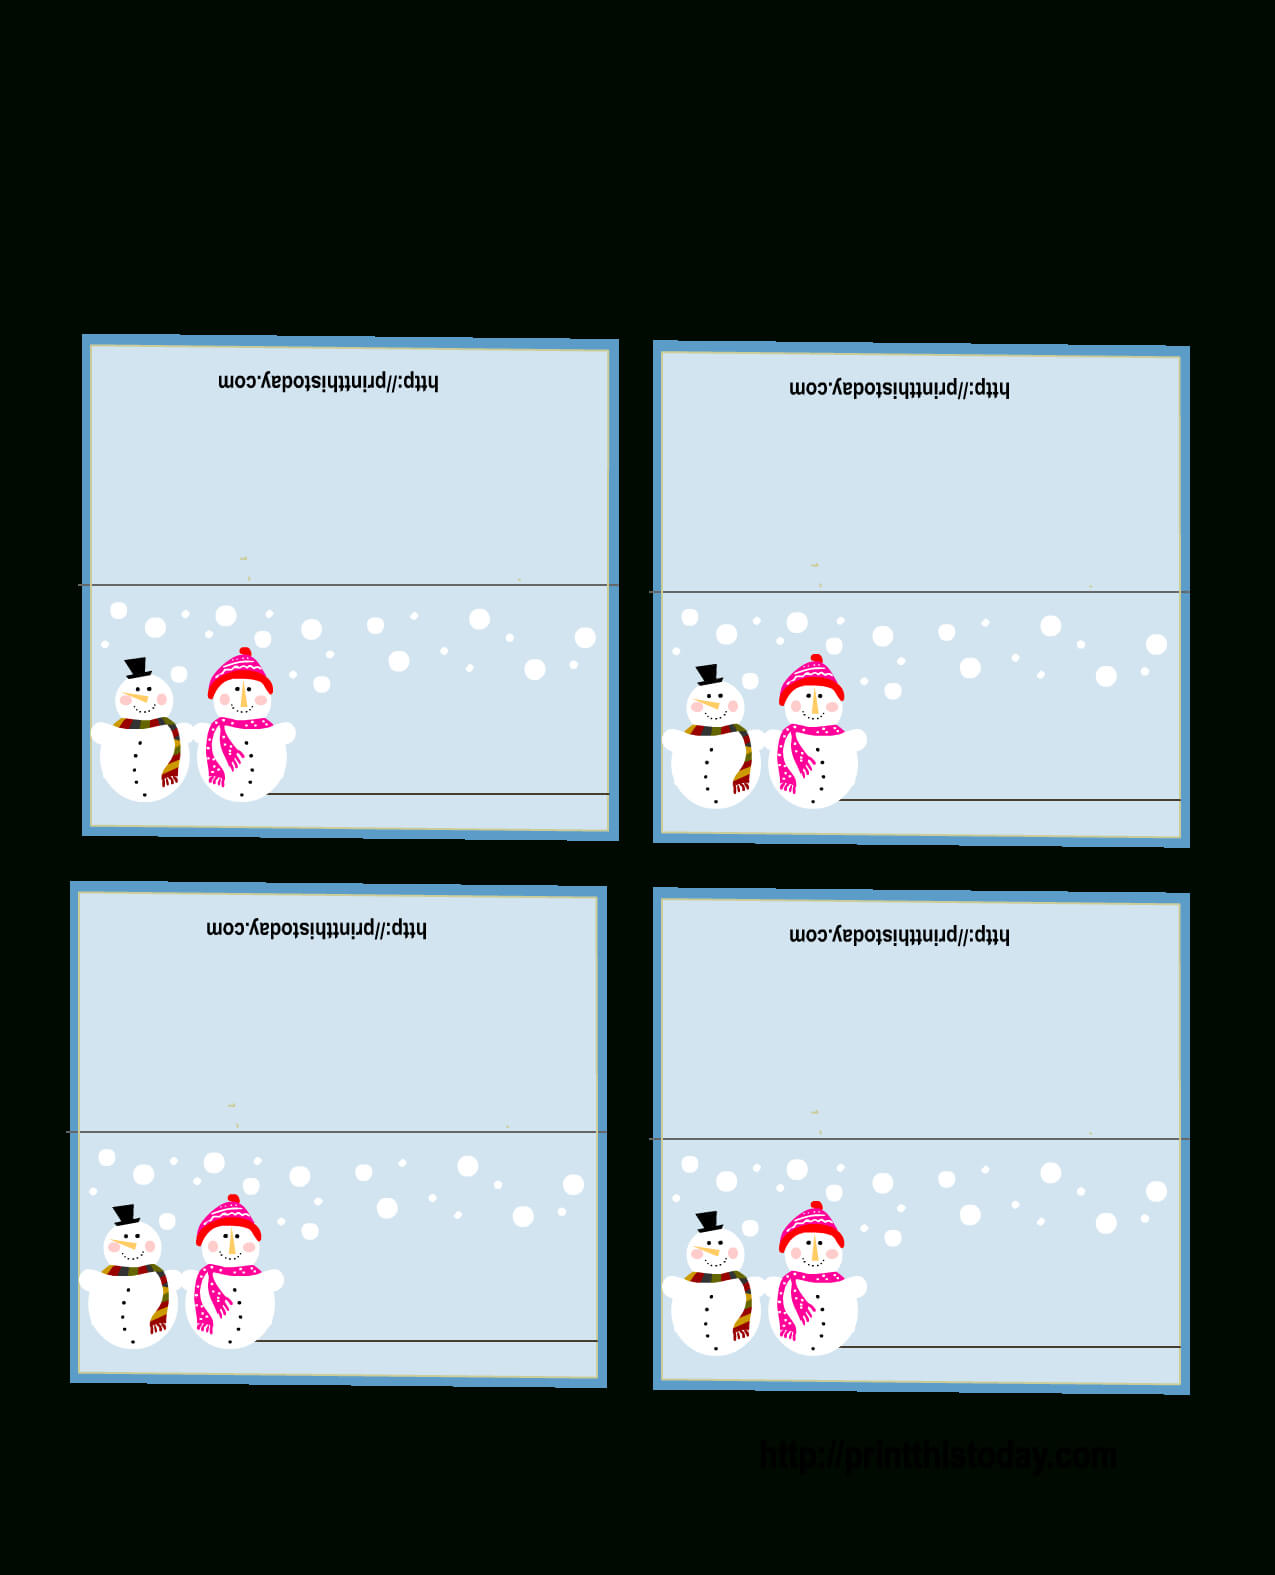 Place Card Template 6 Per Sheet Clipart Images Gallery For inside Place Card Template 6 Per Sheet